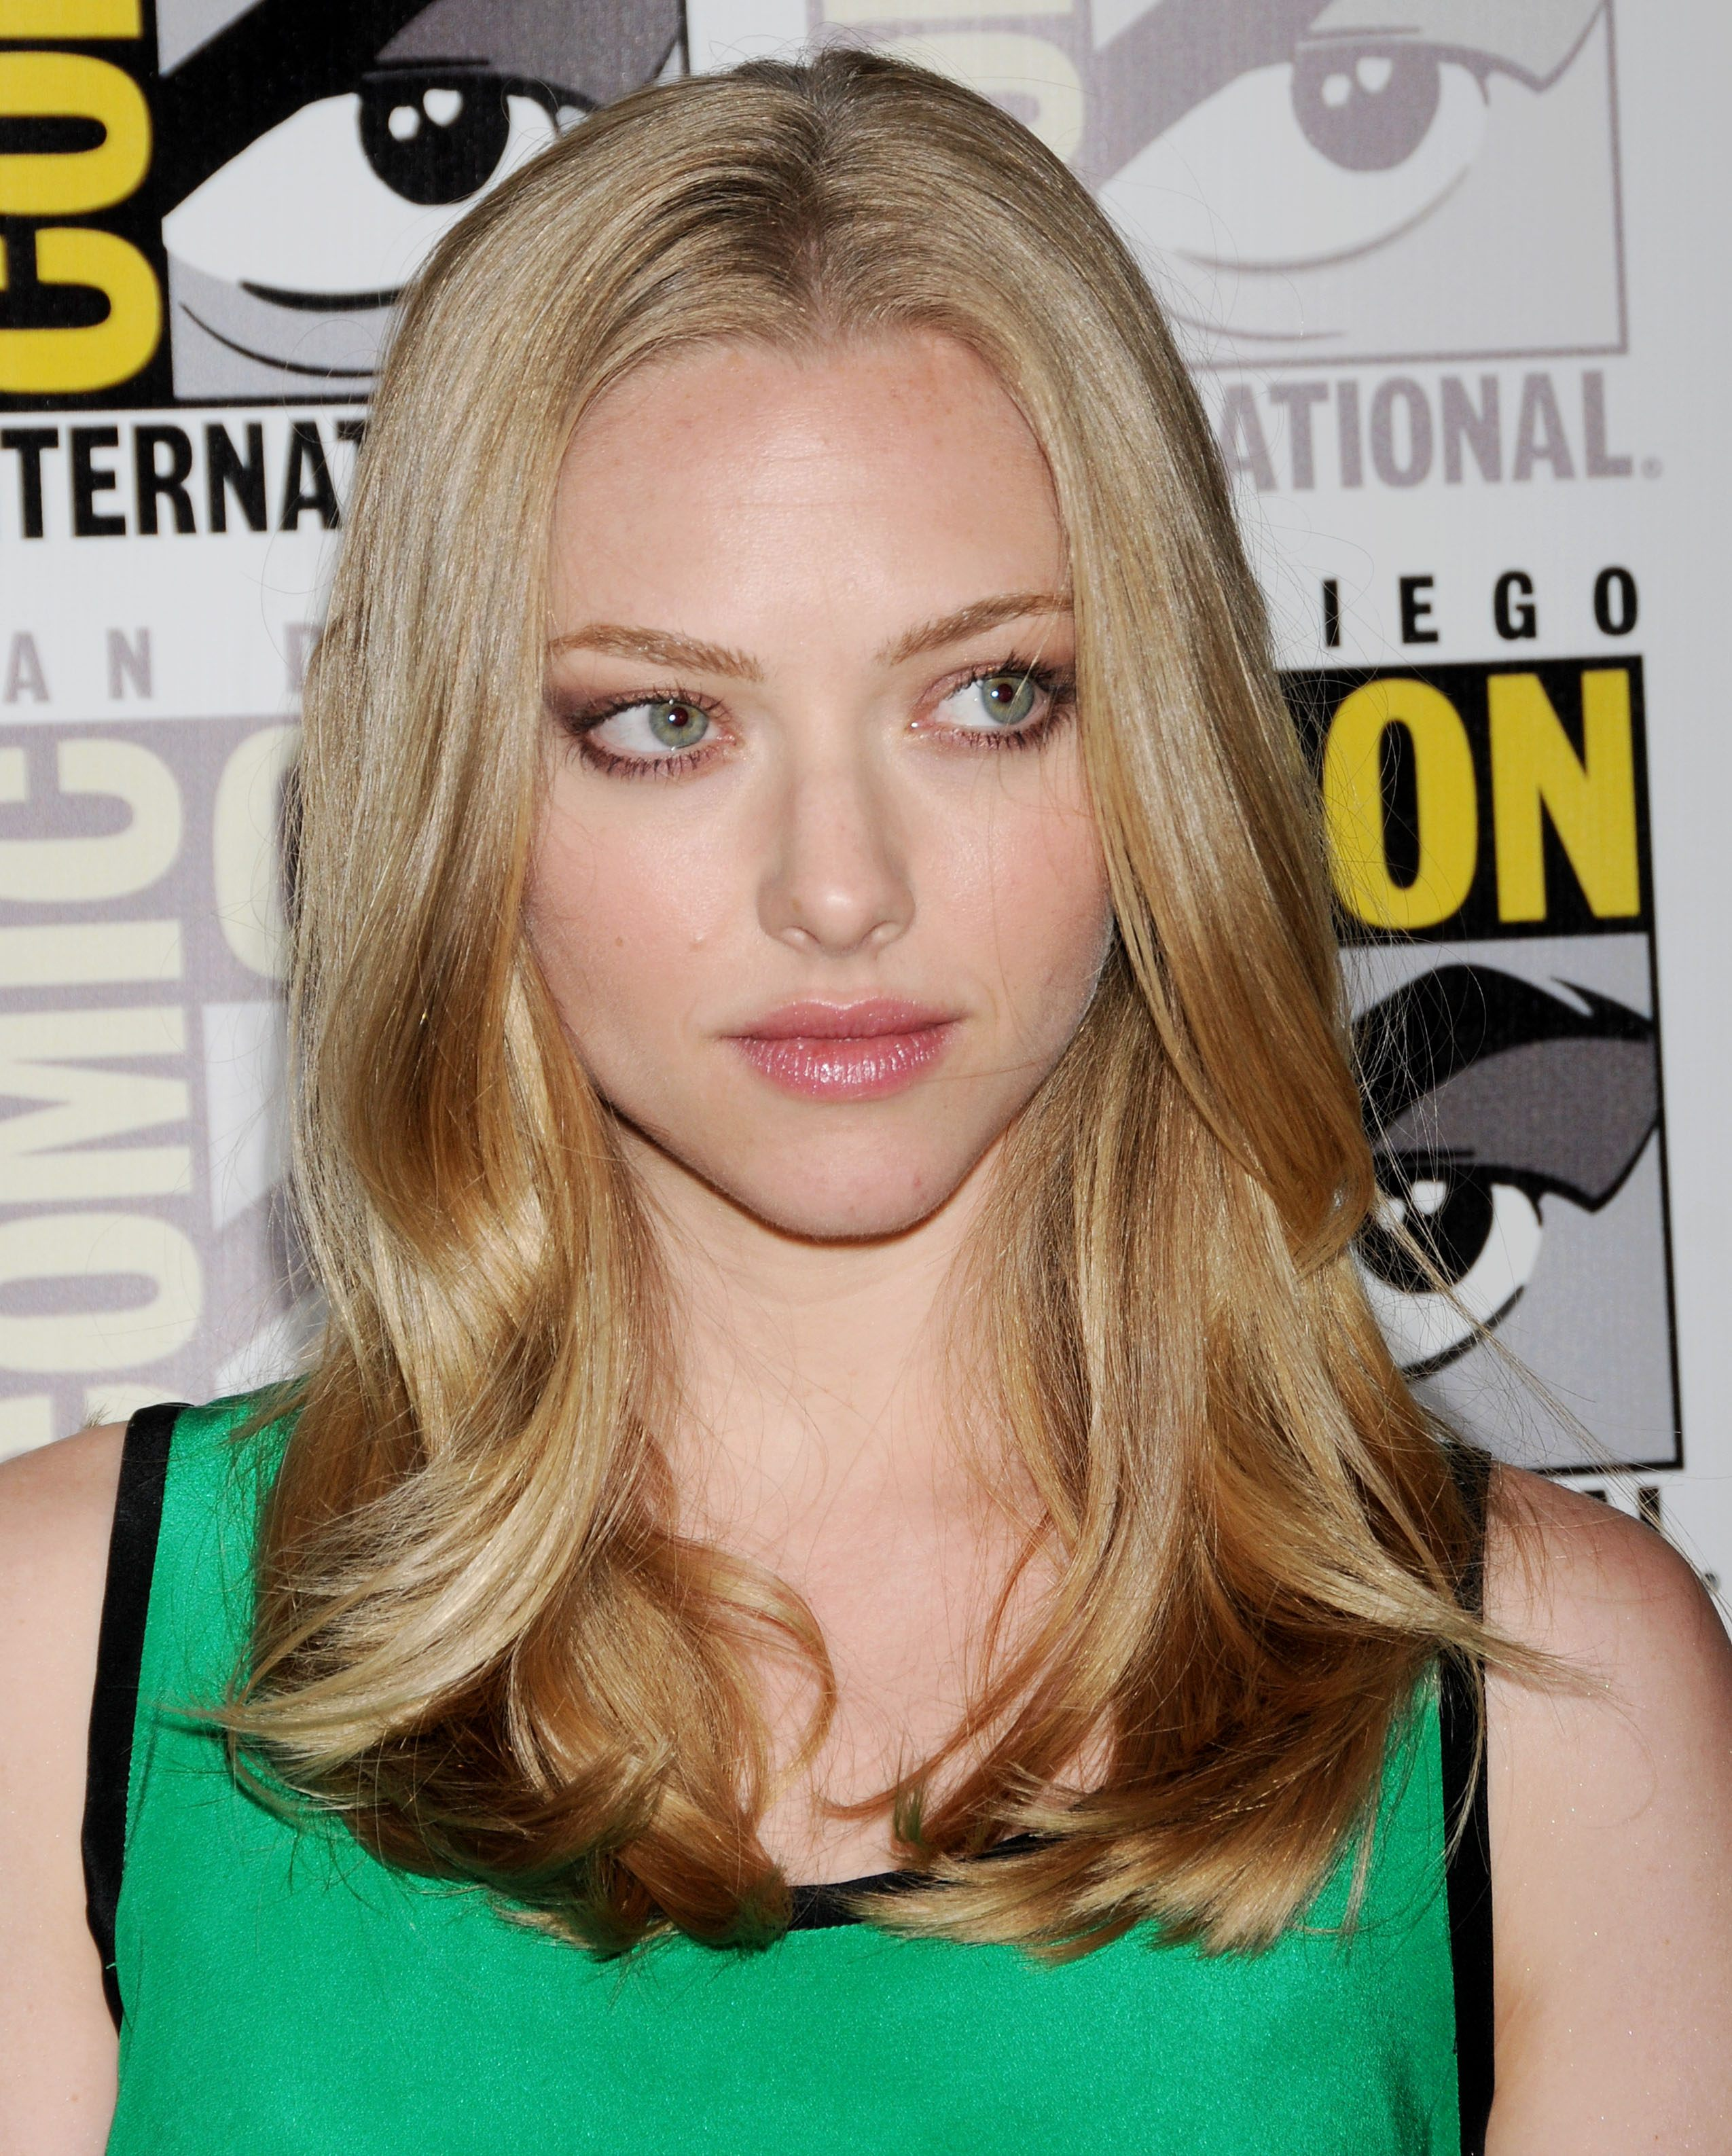 137393578_Amanda_Seyfried_at_San_Diego_Comic_Con1_122_119lo.jpg